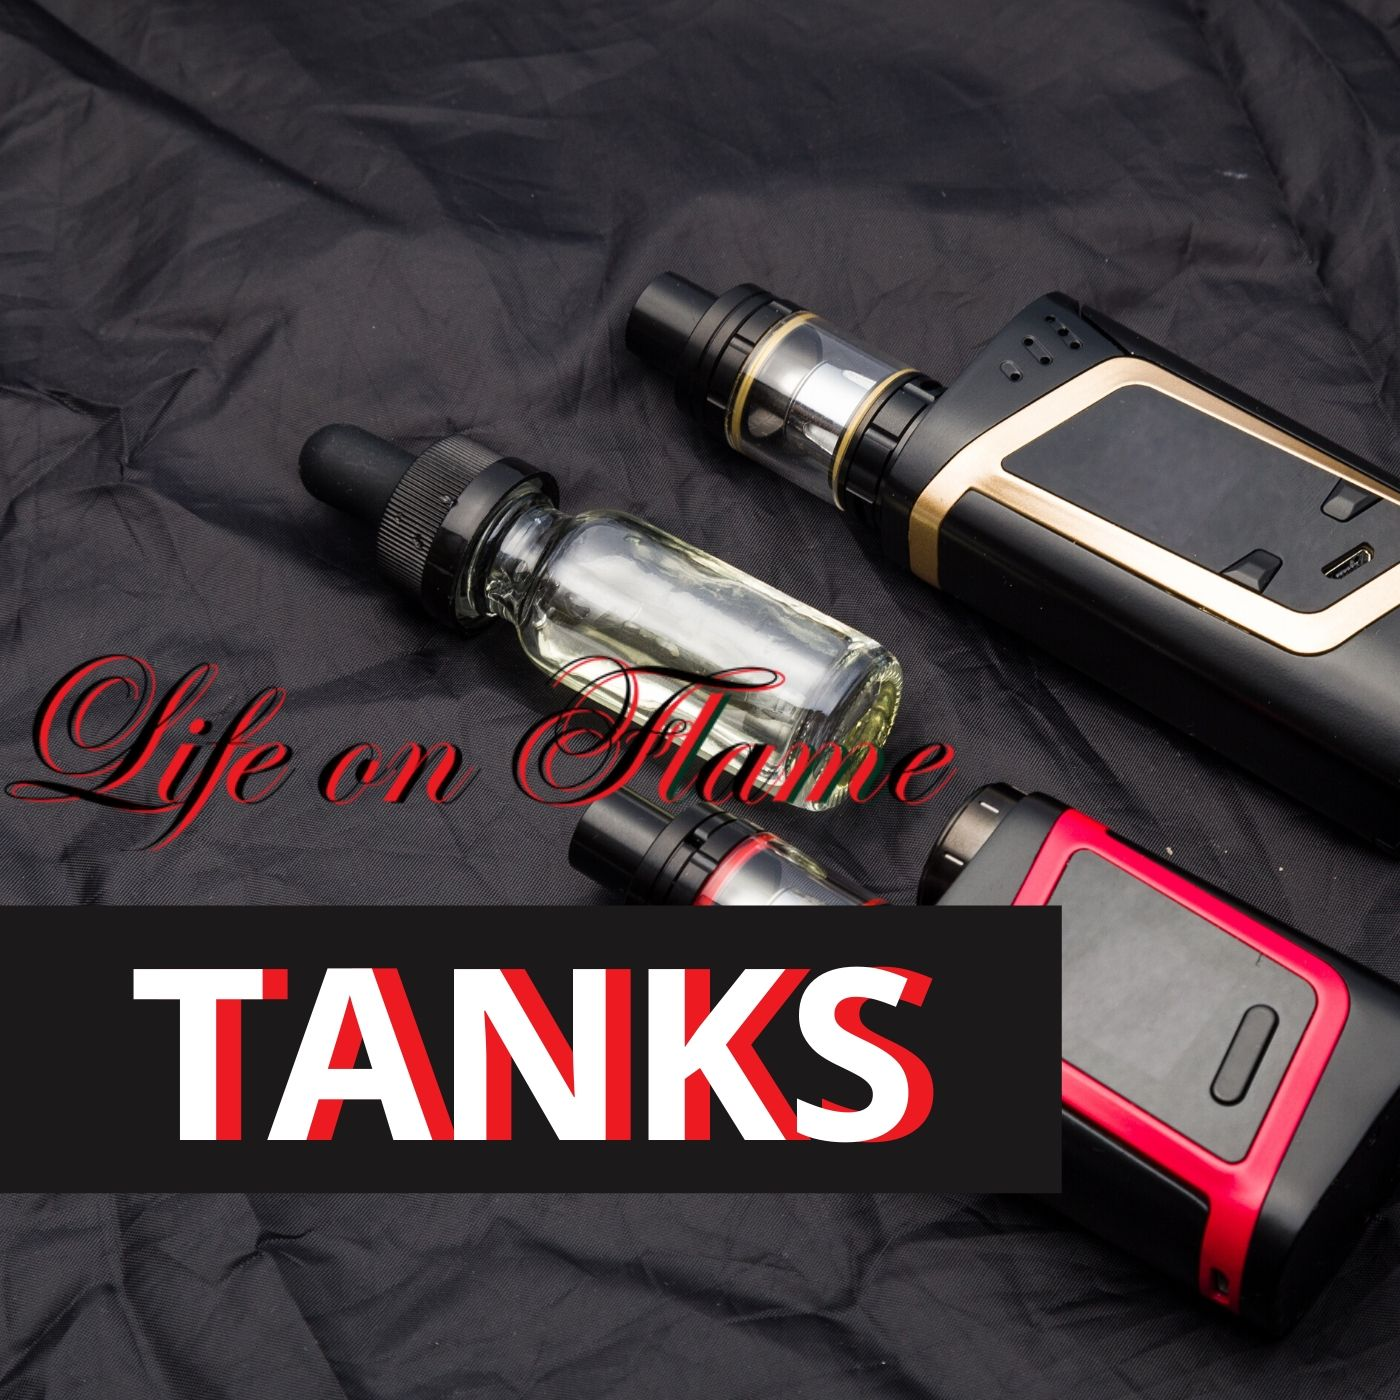 Ecig Tanks - Life on Flame - pleasure in life Bring your ecig addiction to the next level with our branded and high quality vaping tanks. Enjoy the best way to quit smoking like never before.